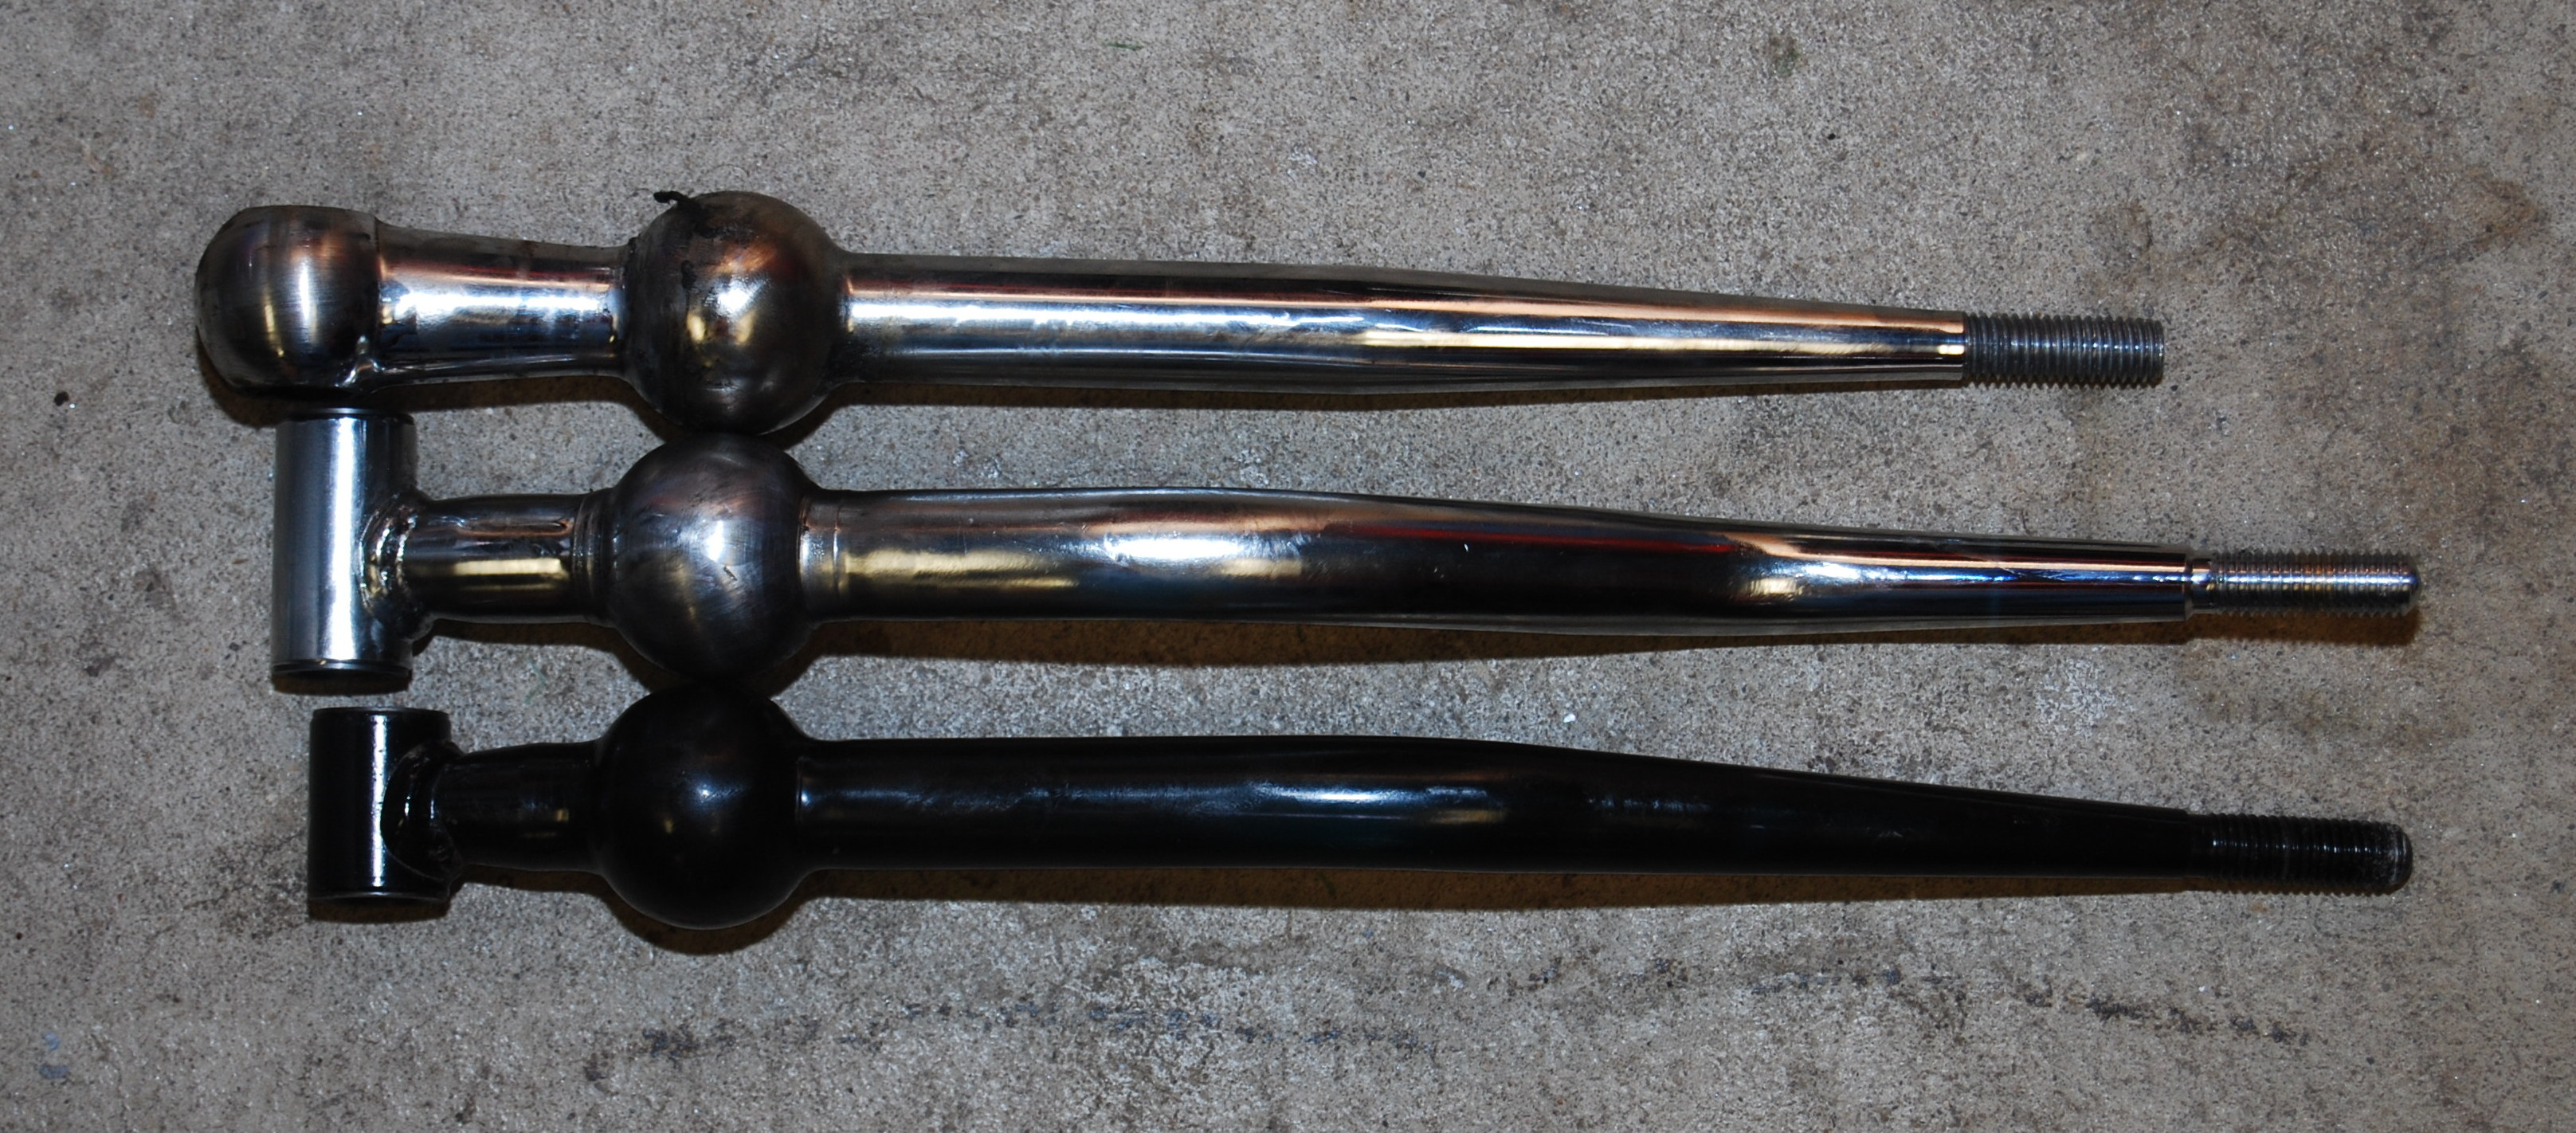 From top to bottom:  B&M, OEM Integra, OEM Civic.  The chromed OEM shifter came in later versions of the Integra.  Earlier versions of the shifter were black.